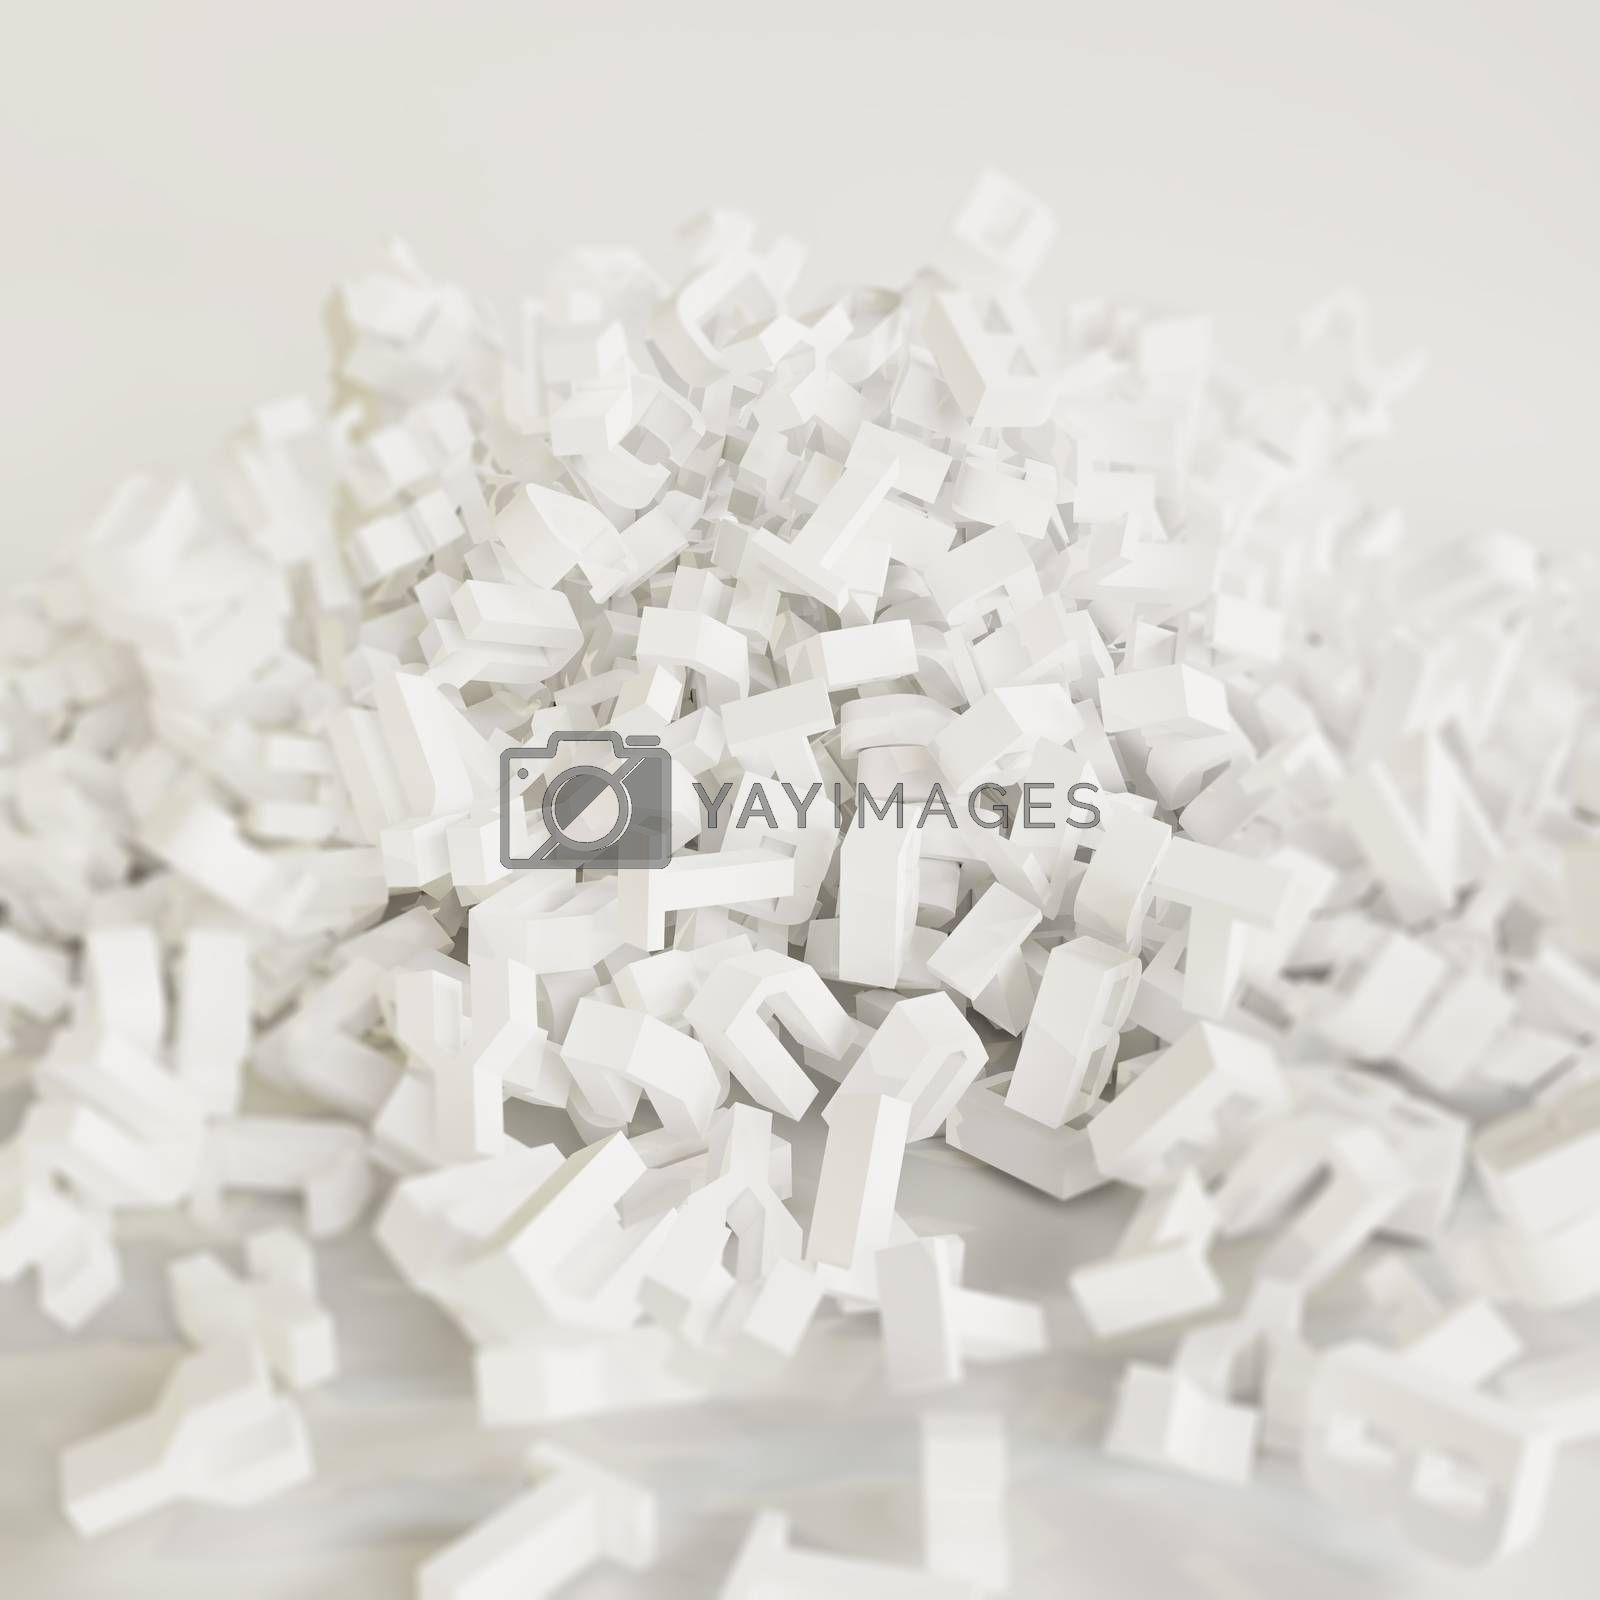 falling letters on white floor isolated on white background 3d illustration